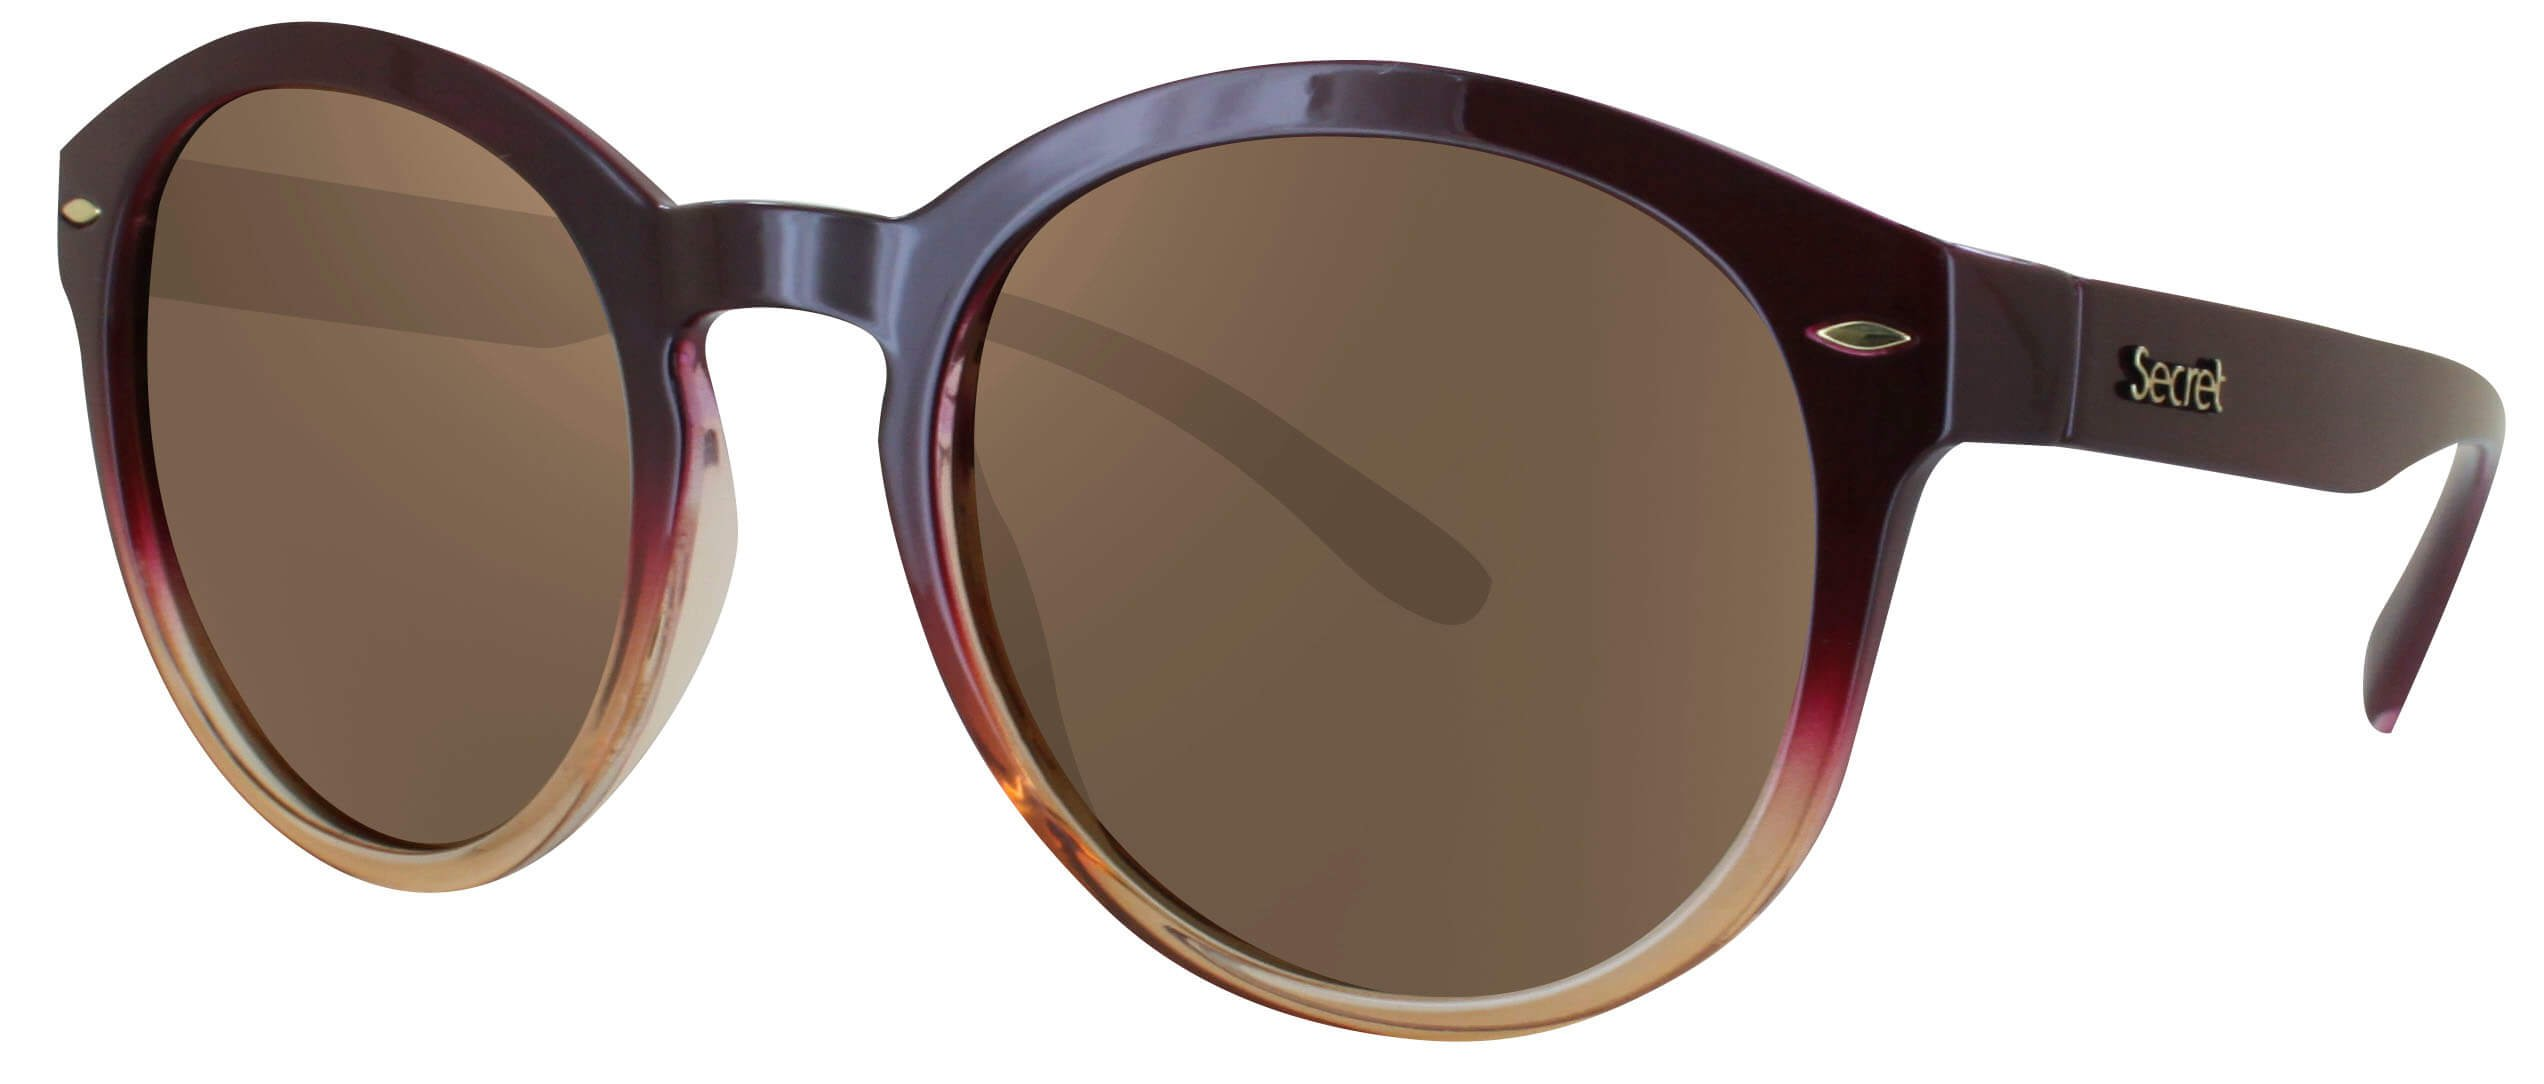 ÓC SECRET WANNABE FADE PASSIONATE/YELLOW / POLARIZED BROWN